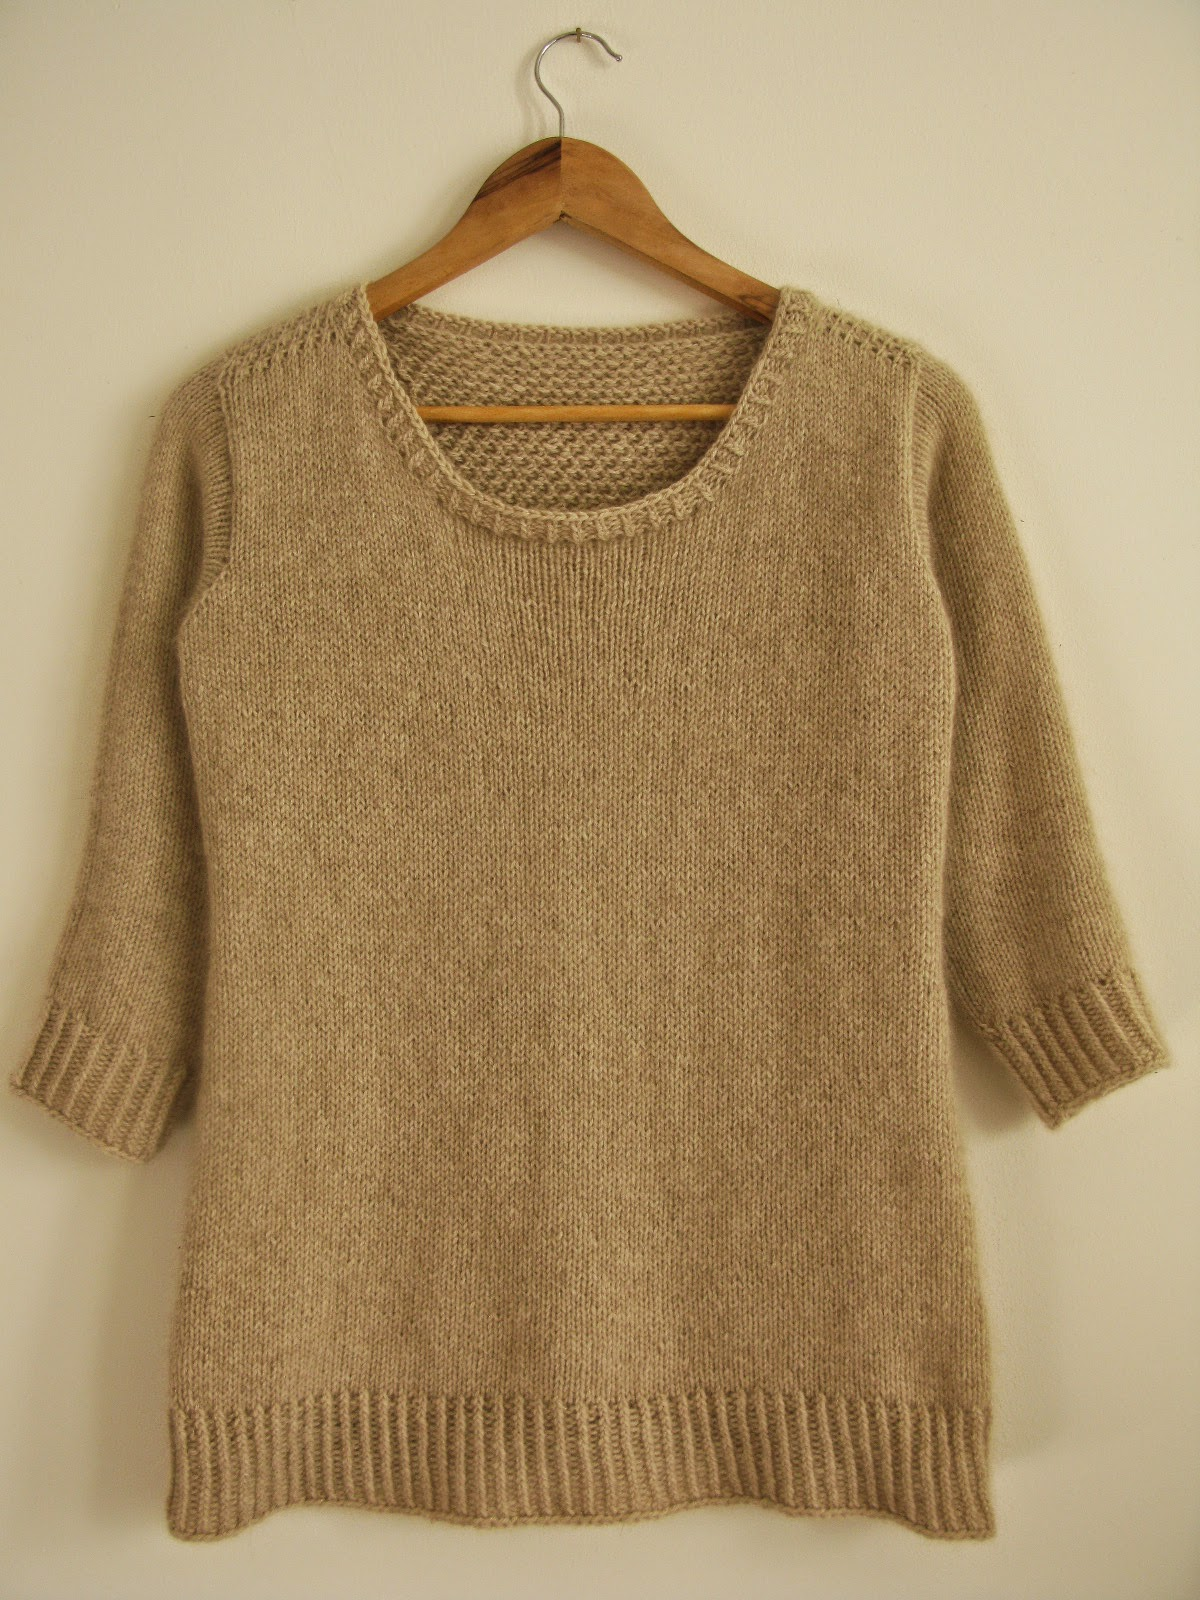 cashmere sweater knitting pattern